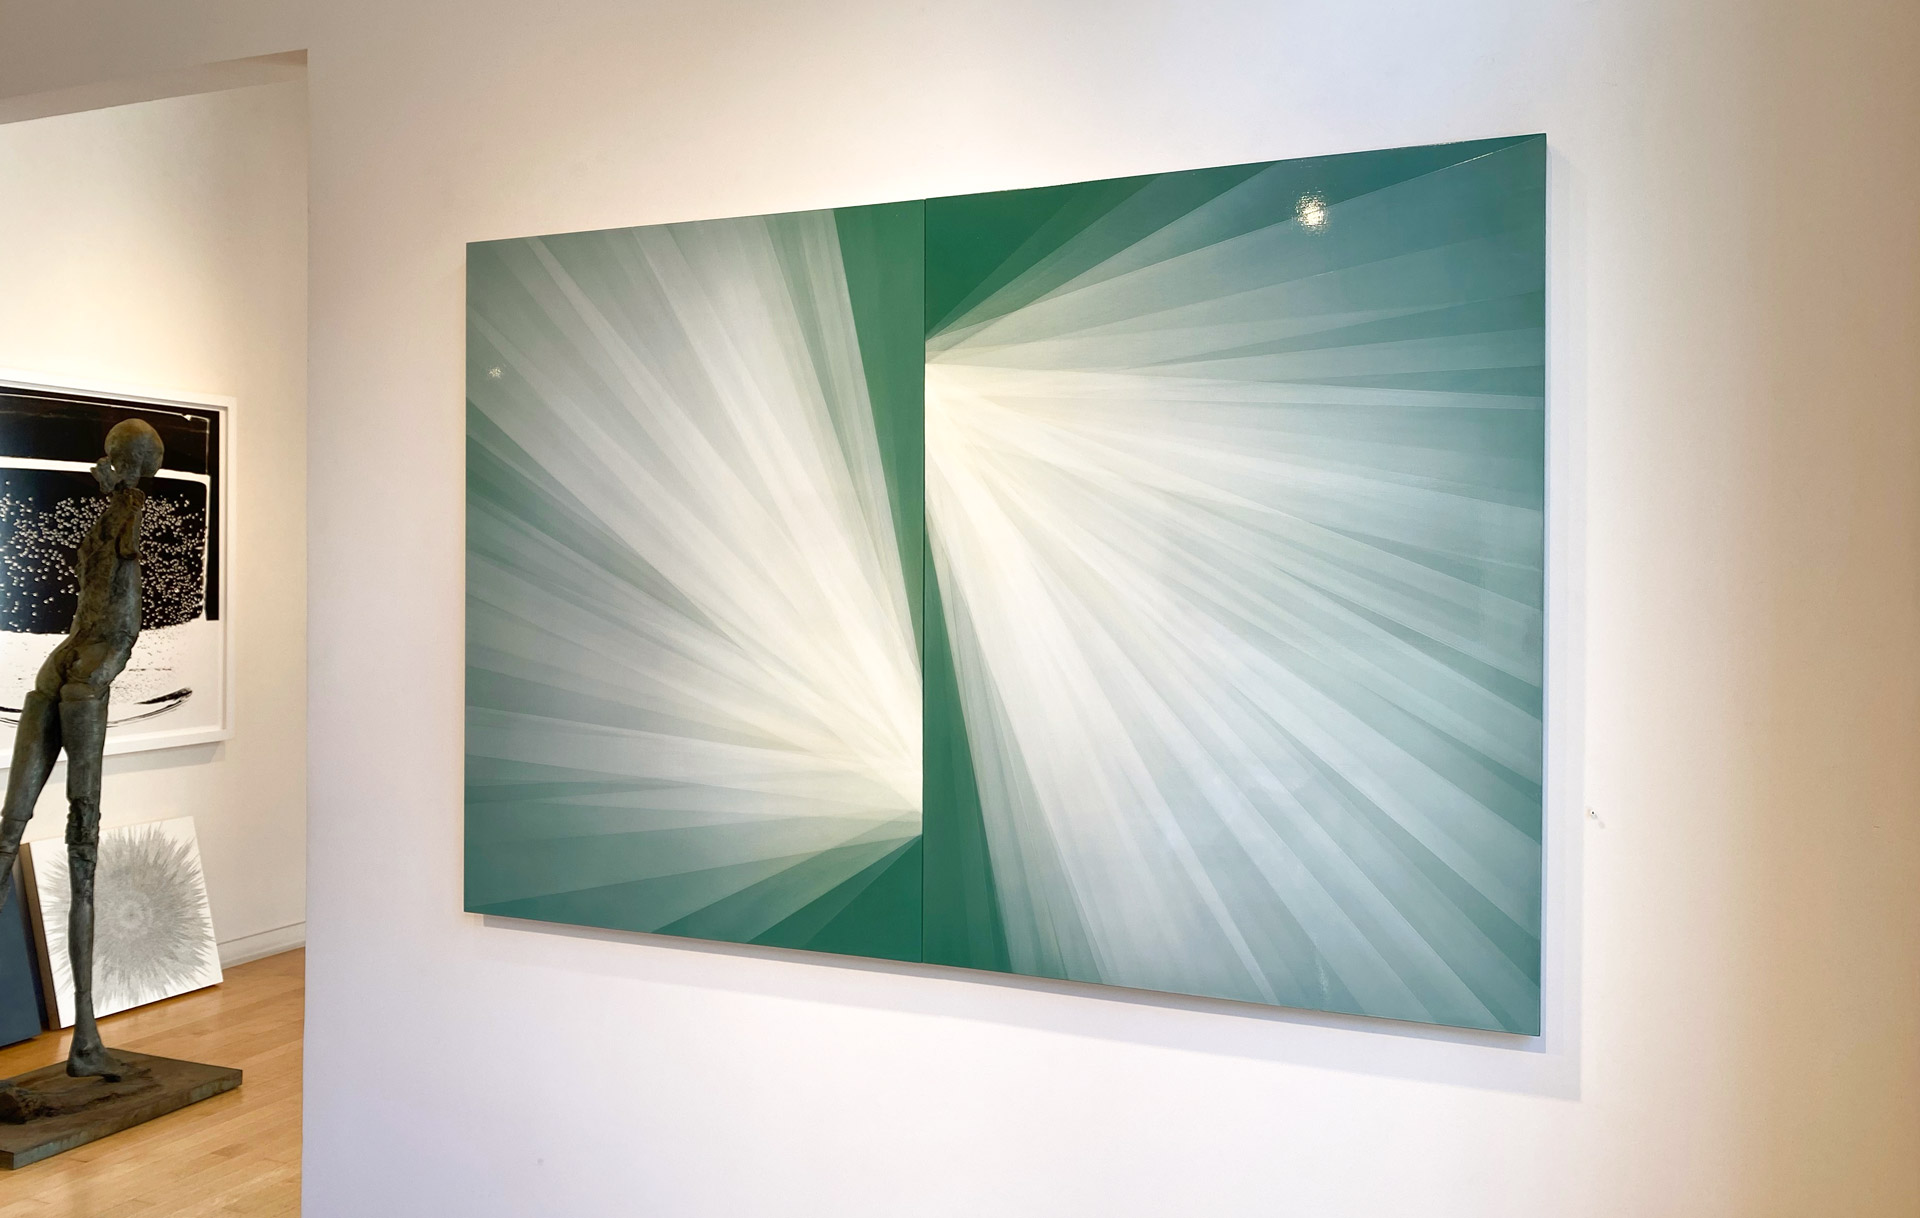 Bernadette Jiyong Frank | Time Shadow 2020 | Dolby Chadwick Gallery